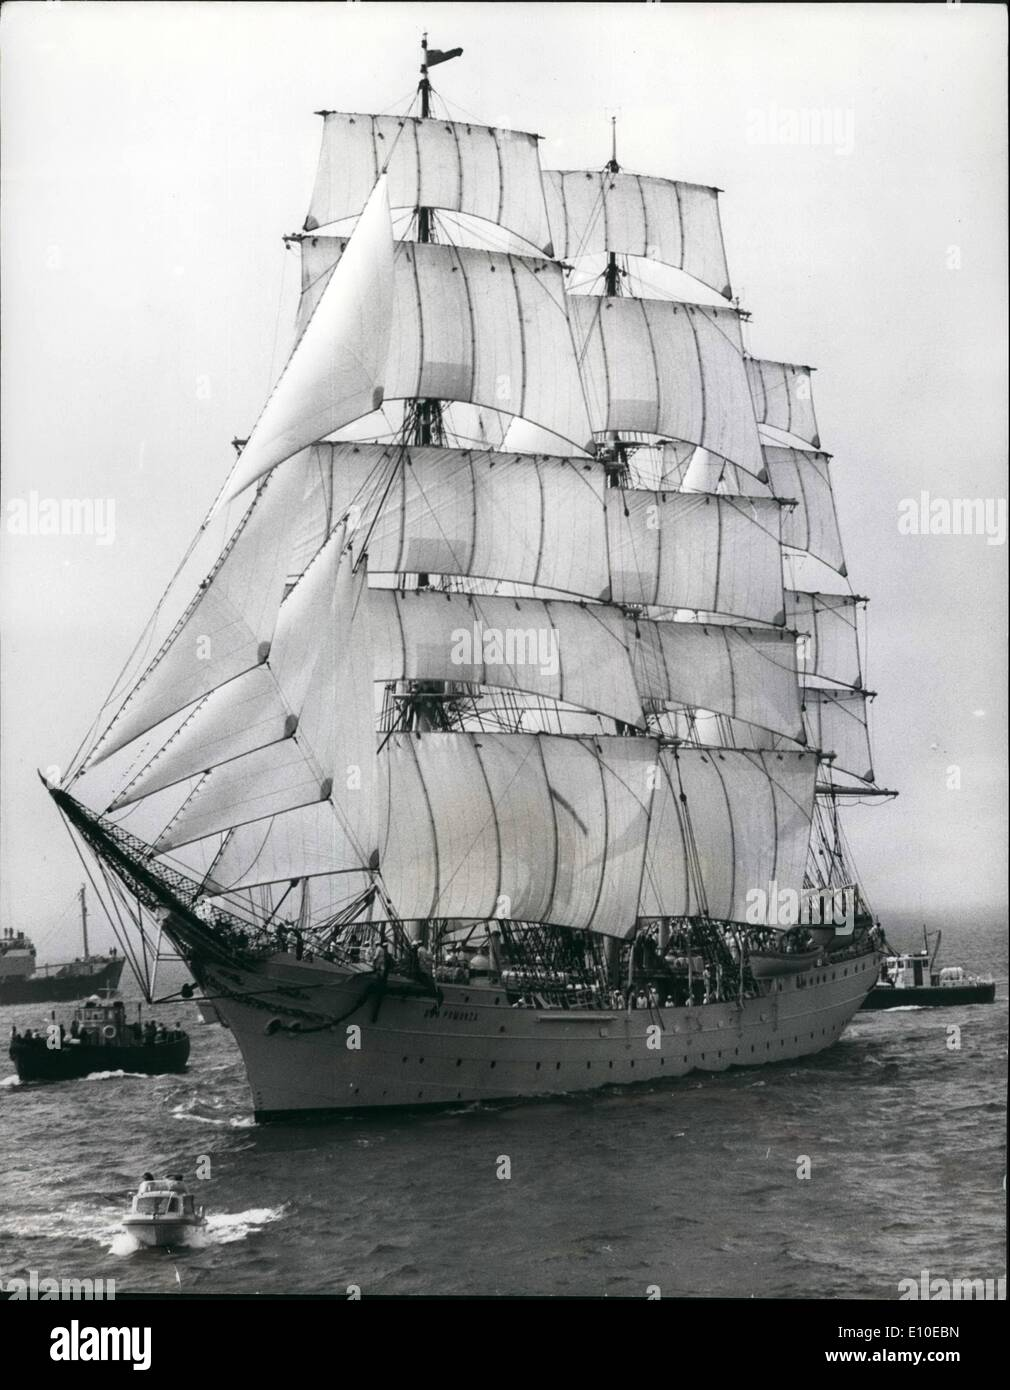 Aug. 08, 1972 - Ships set off from the Solent in the tall ships Race.: One of the largest ships which set off from the Solent today in the tall ships race from the Solent to the Skaw, Jutland,was the 'Dar Pomorza', from Poland. - Stock Image